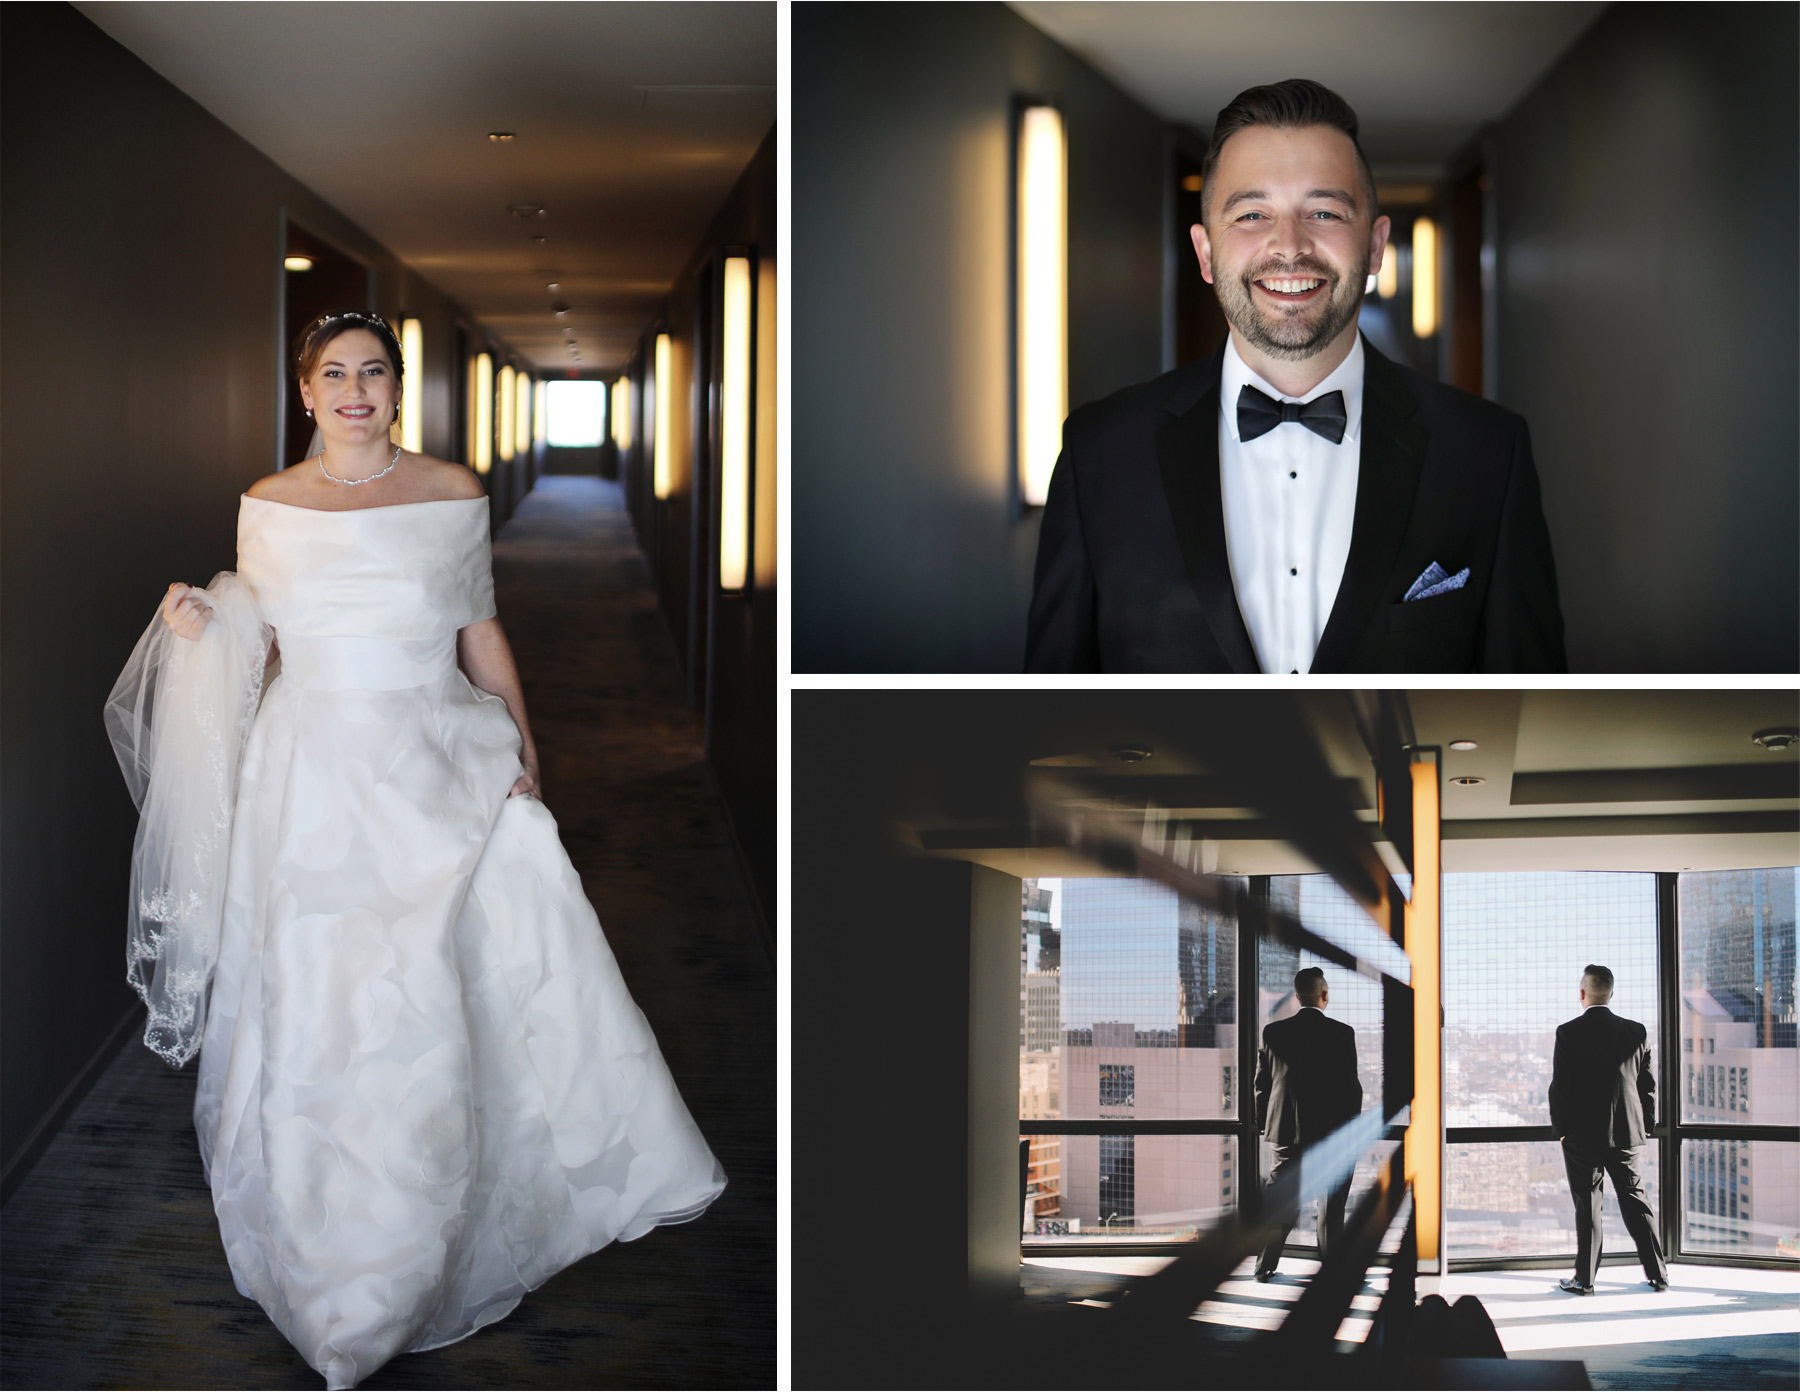 04-Minneapolis-Minnesota-Wedding-Photography-by-Vick-Photography-Loews-Hotel-First-Look-Caitlin-and-Alec.jpg